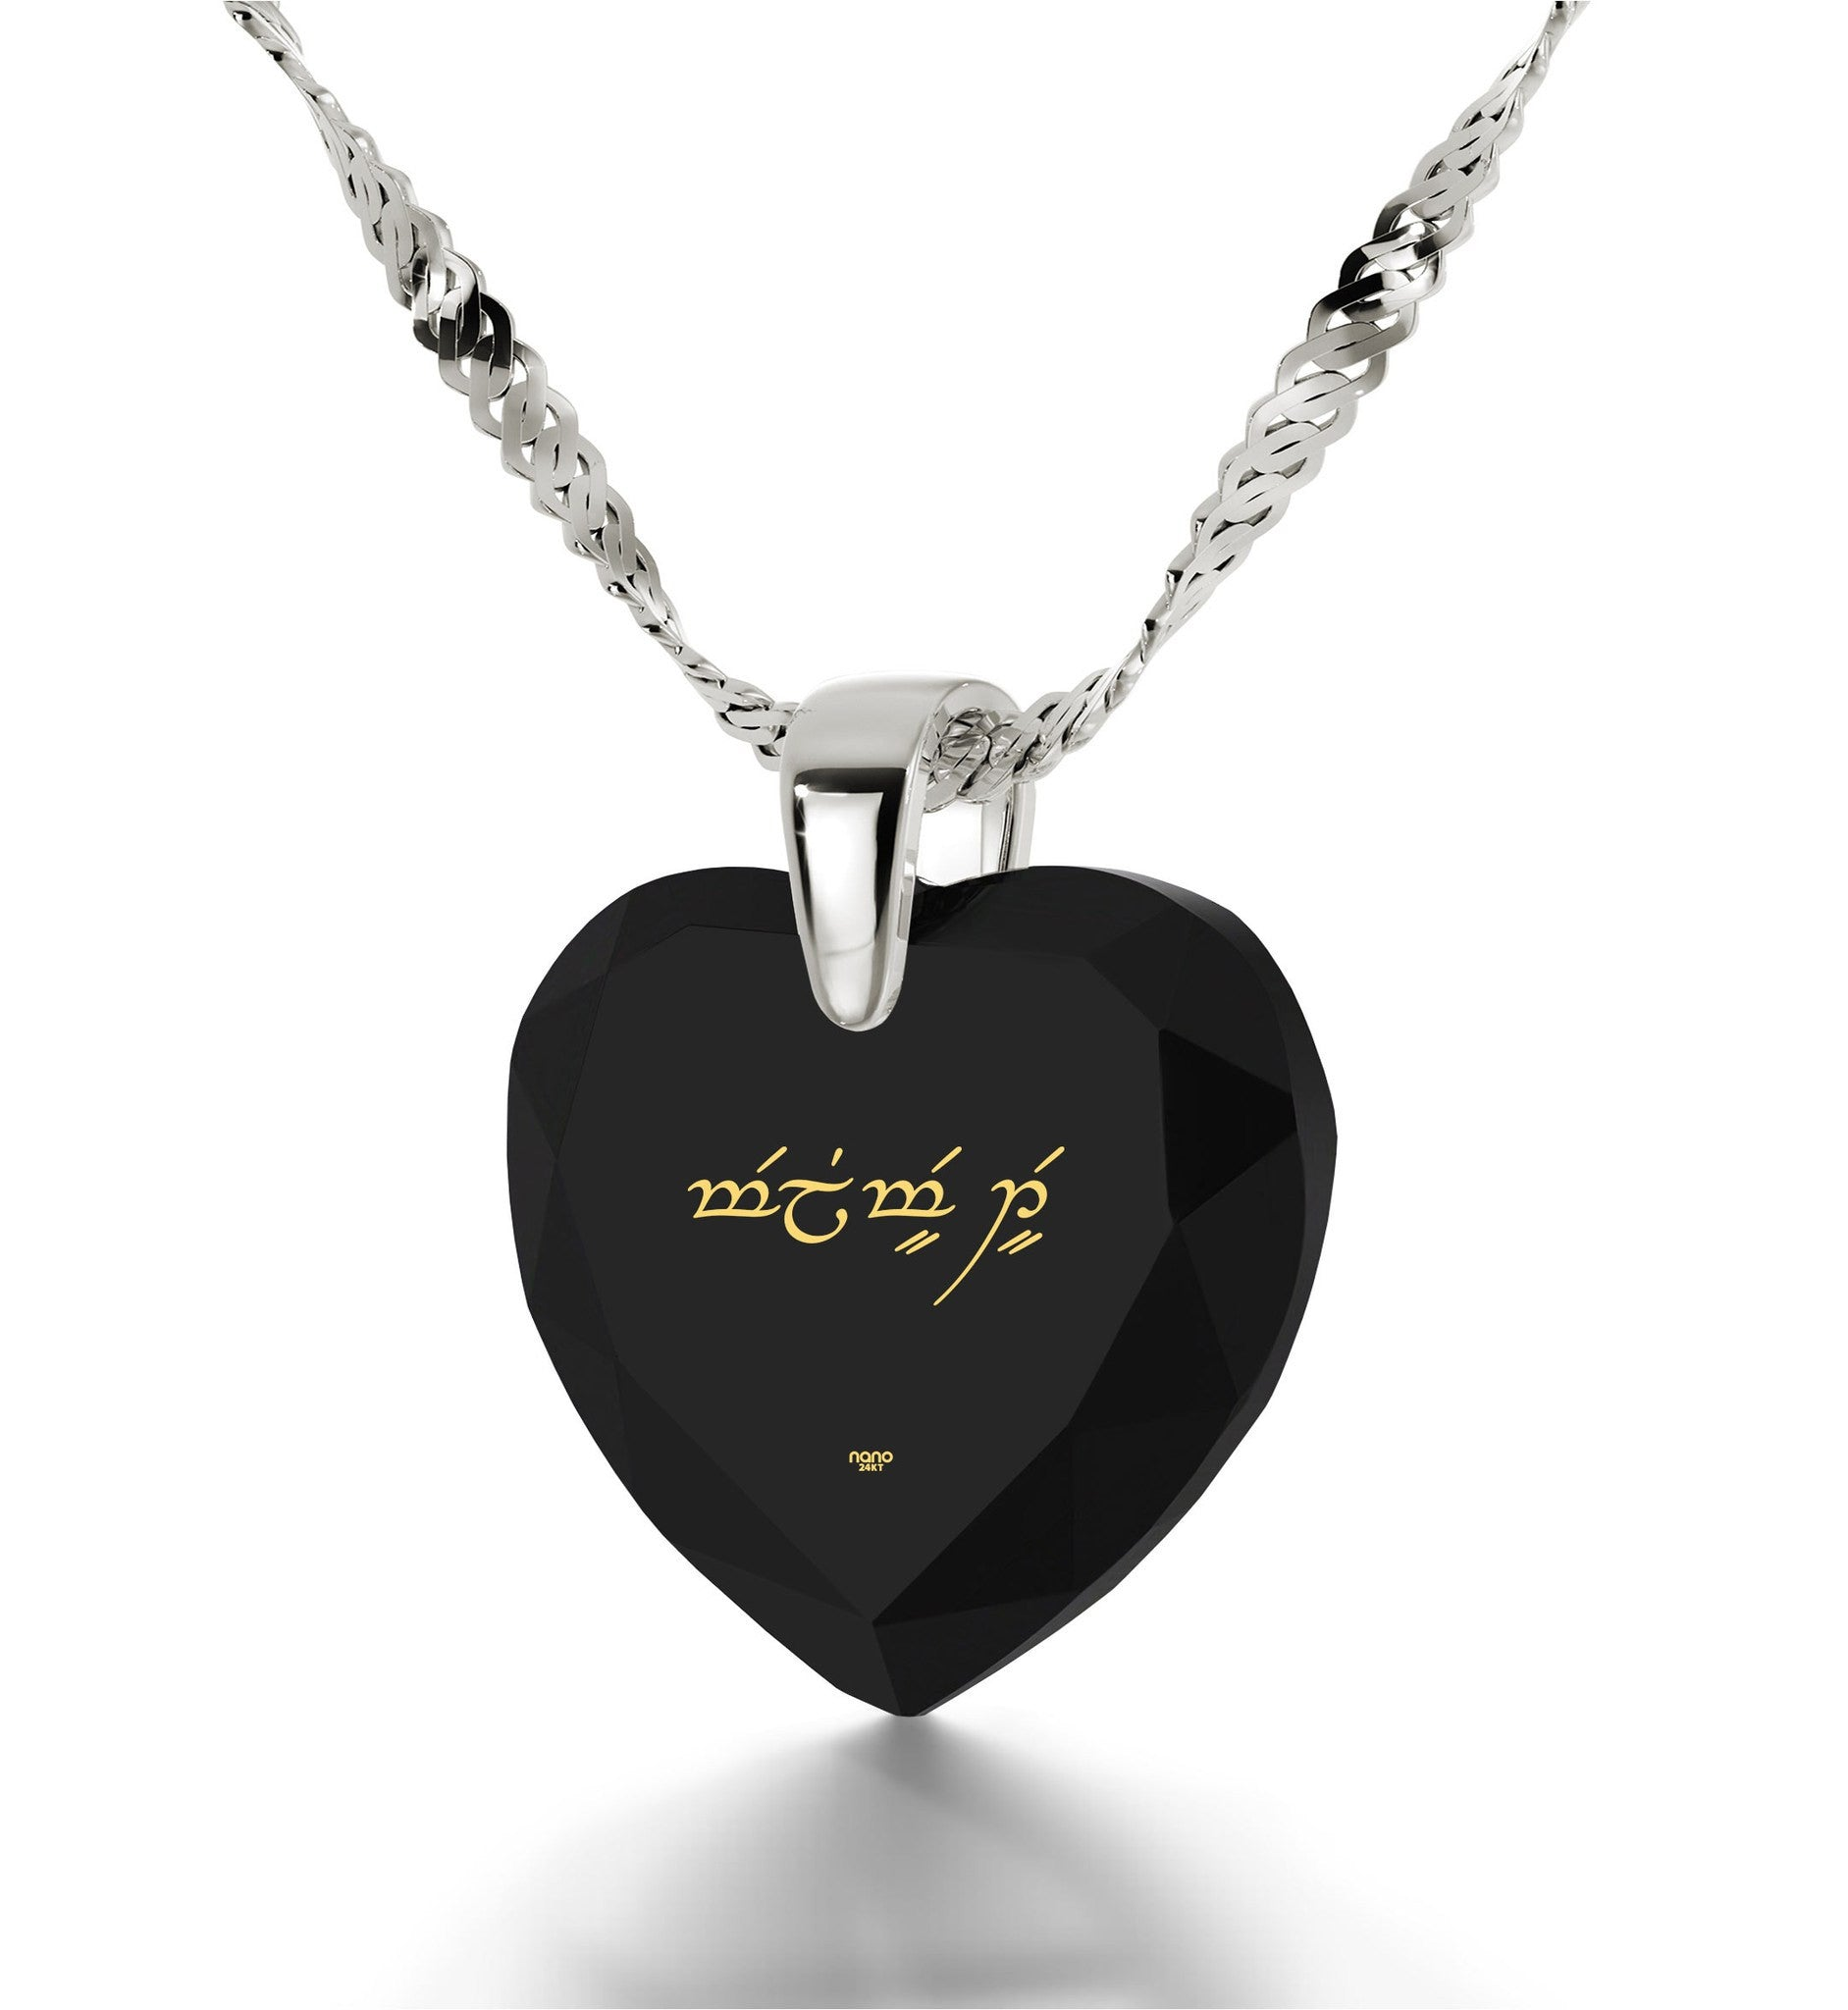 What to Get Wife for Christmas, Lord of The Rings Jewelry, Womens Presents, Nano